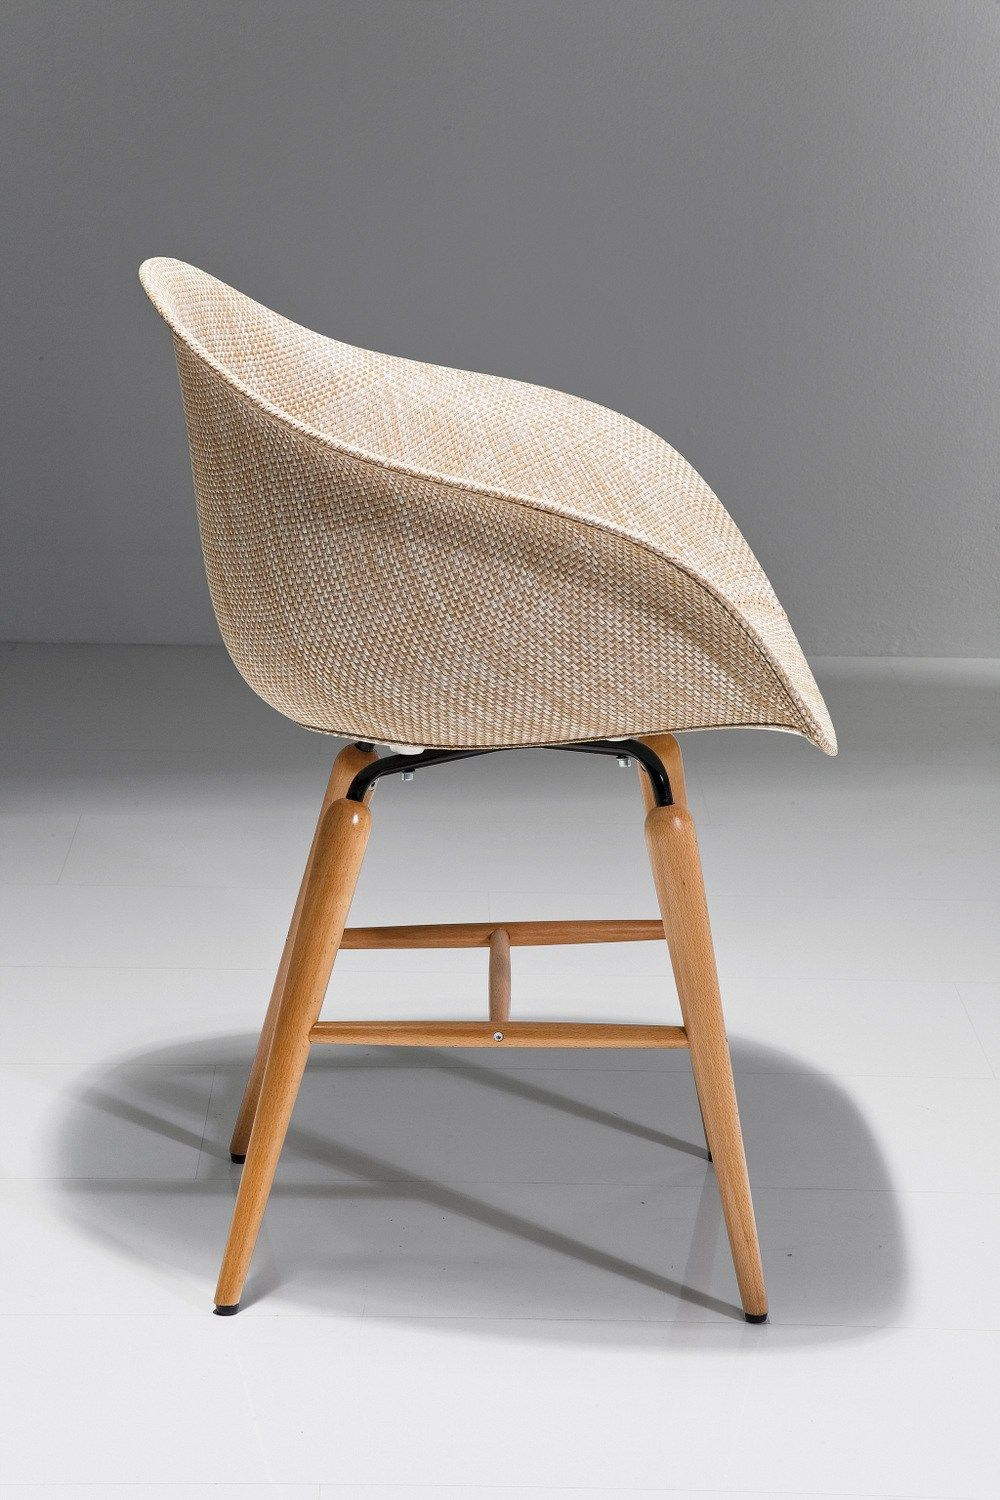 Wooden easy chair designs - Pvc Easy Chair With Armrests Forum Wood Natural Kare Design